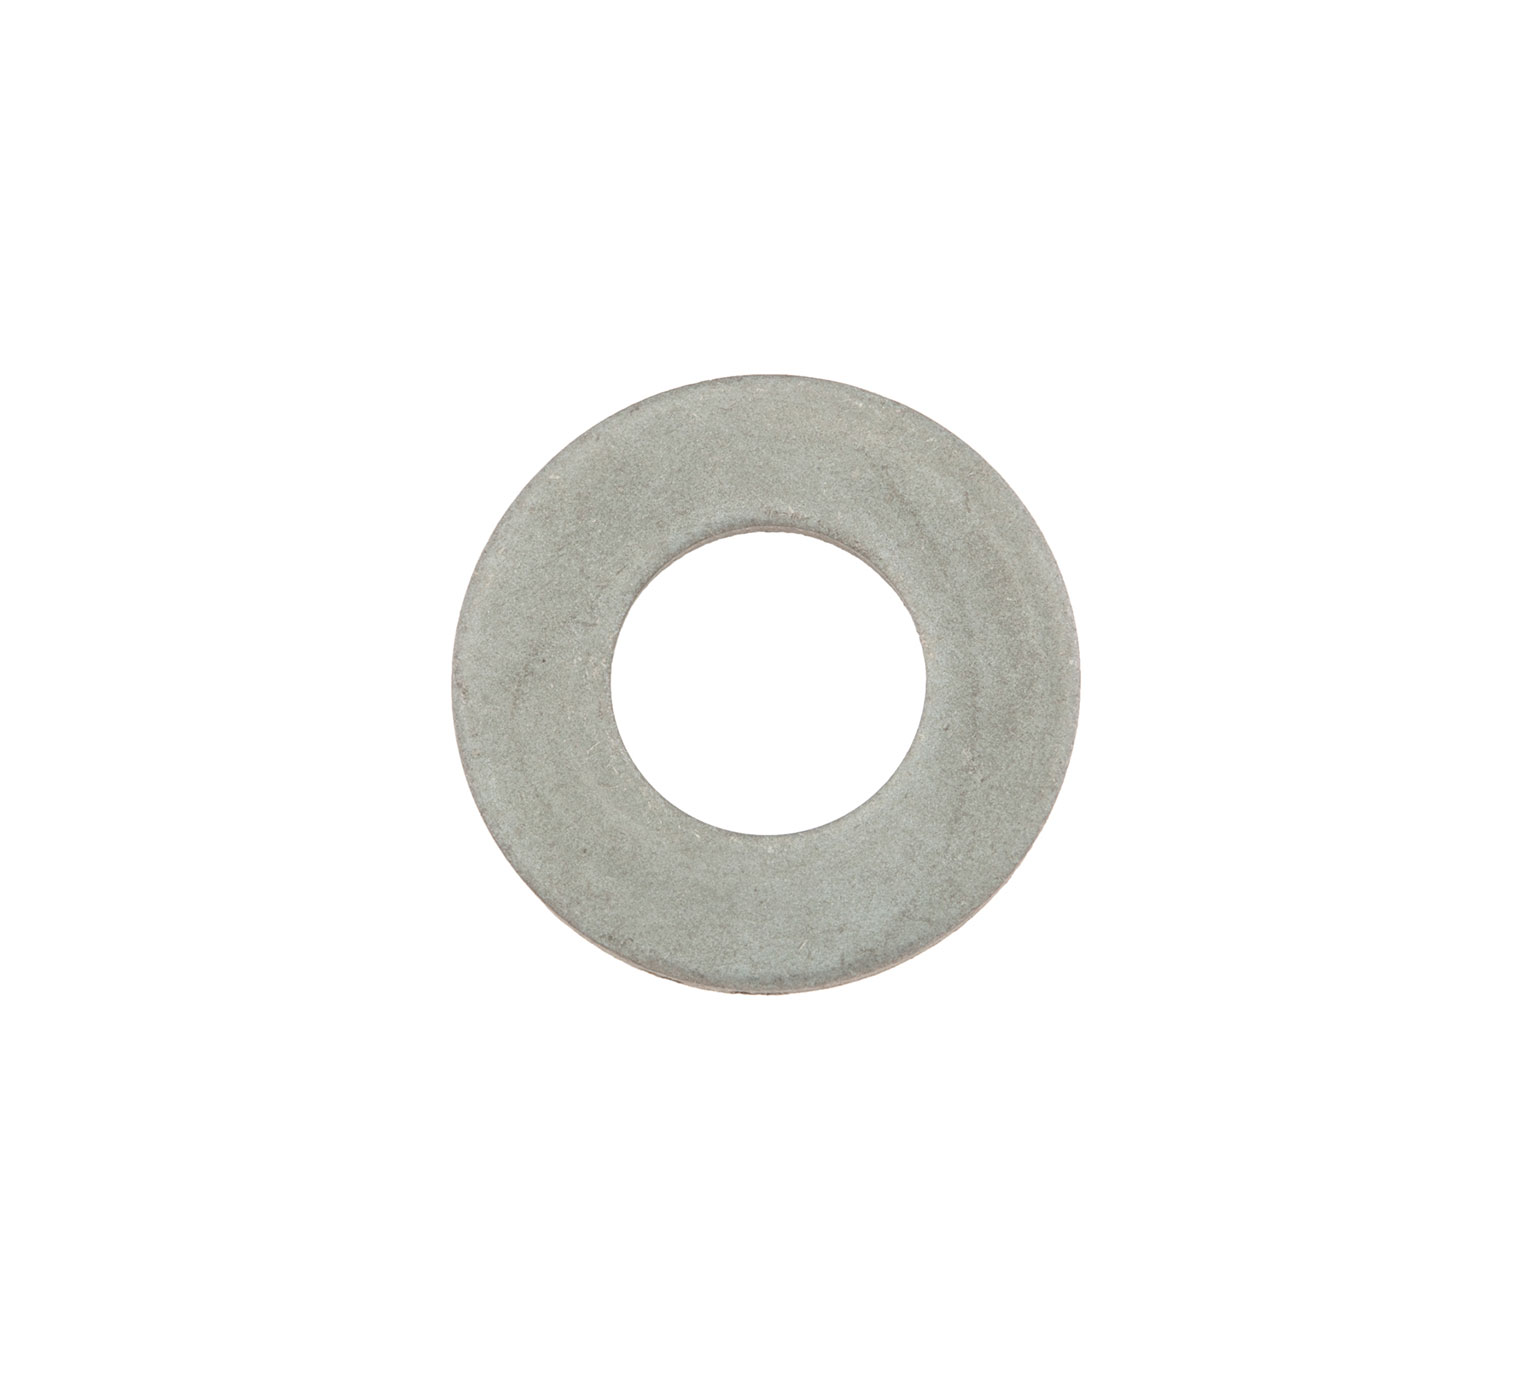 03890 Steel Washer - 1.188 OD x 0.594 ID x 0.1 in alt 1